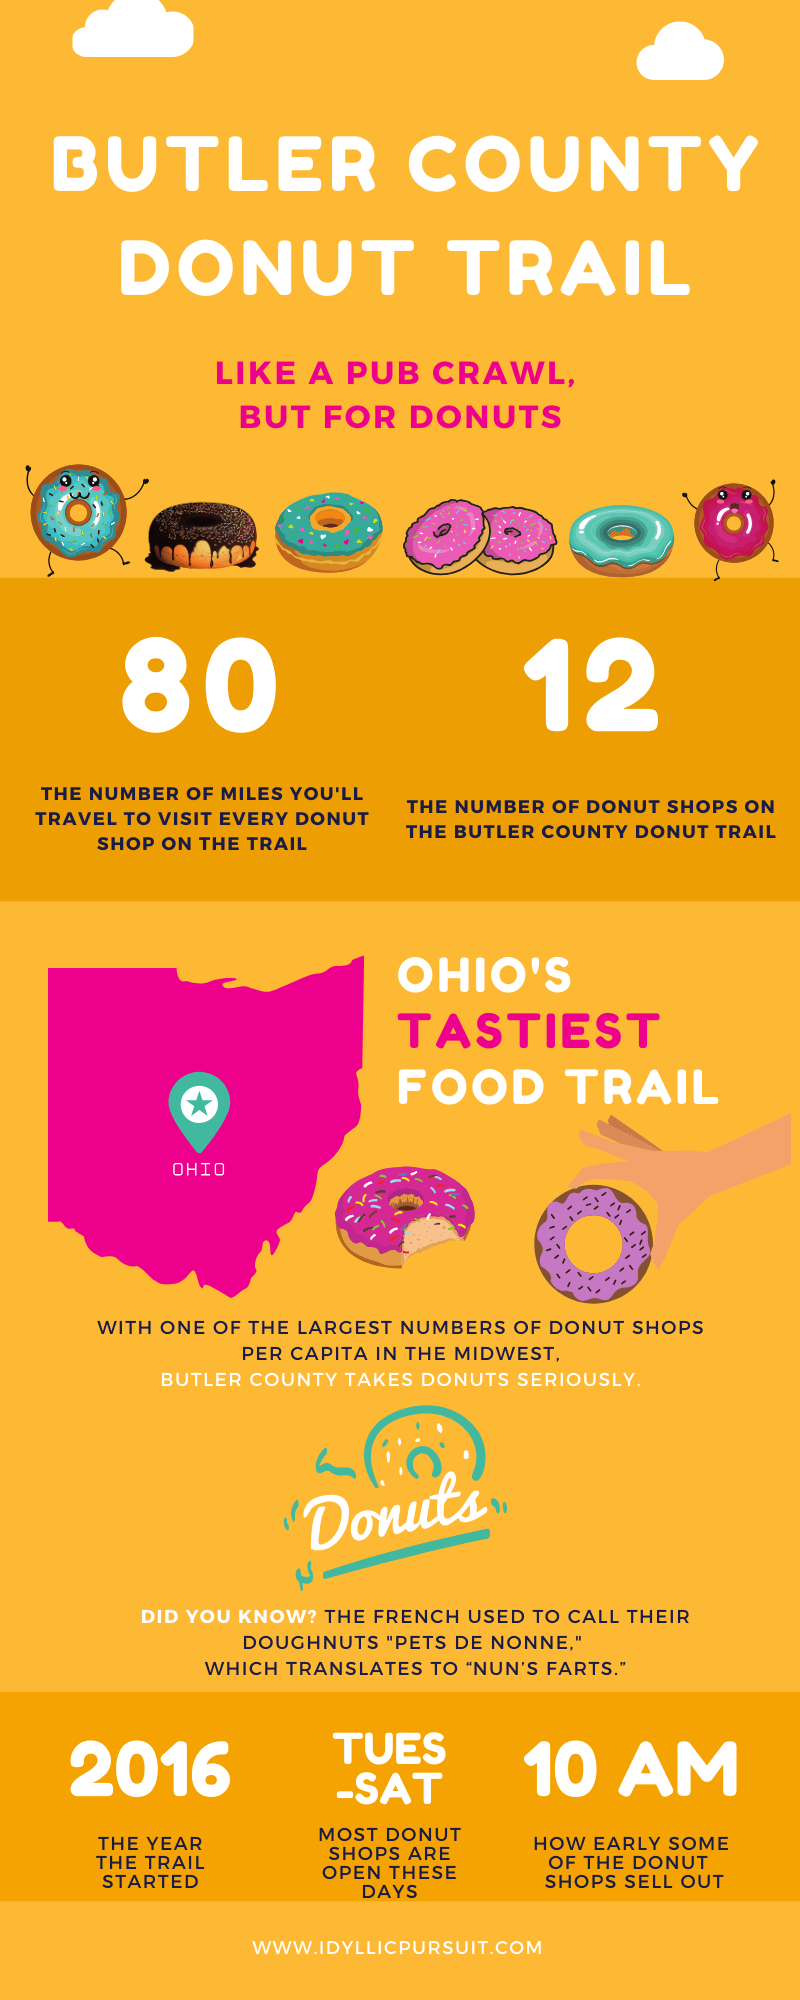 The Ultimate Guide To The Butler County Donut Trail